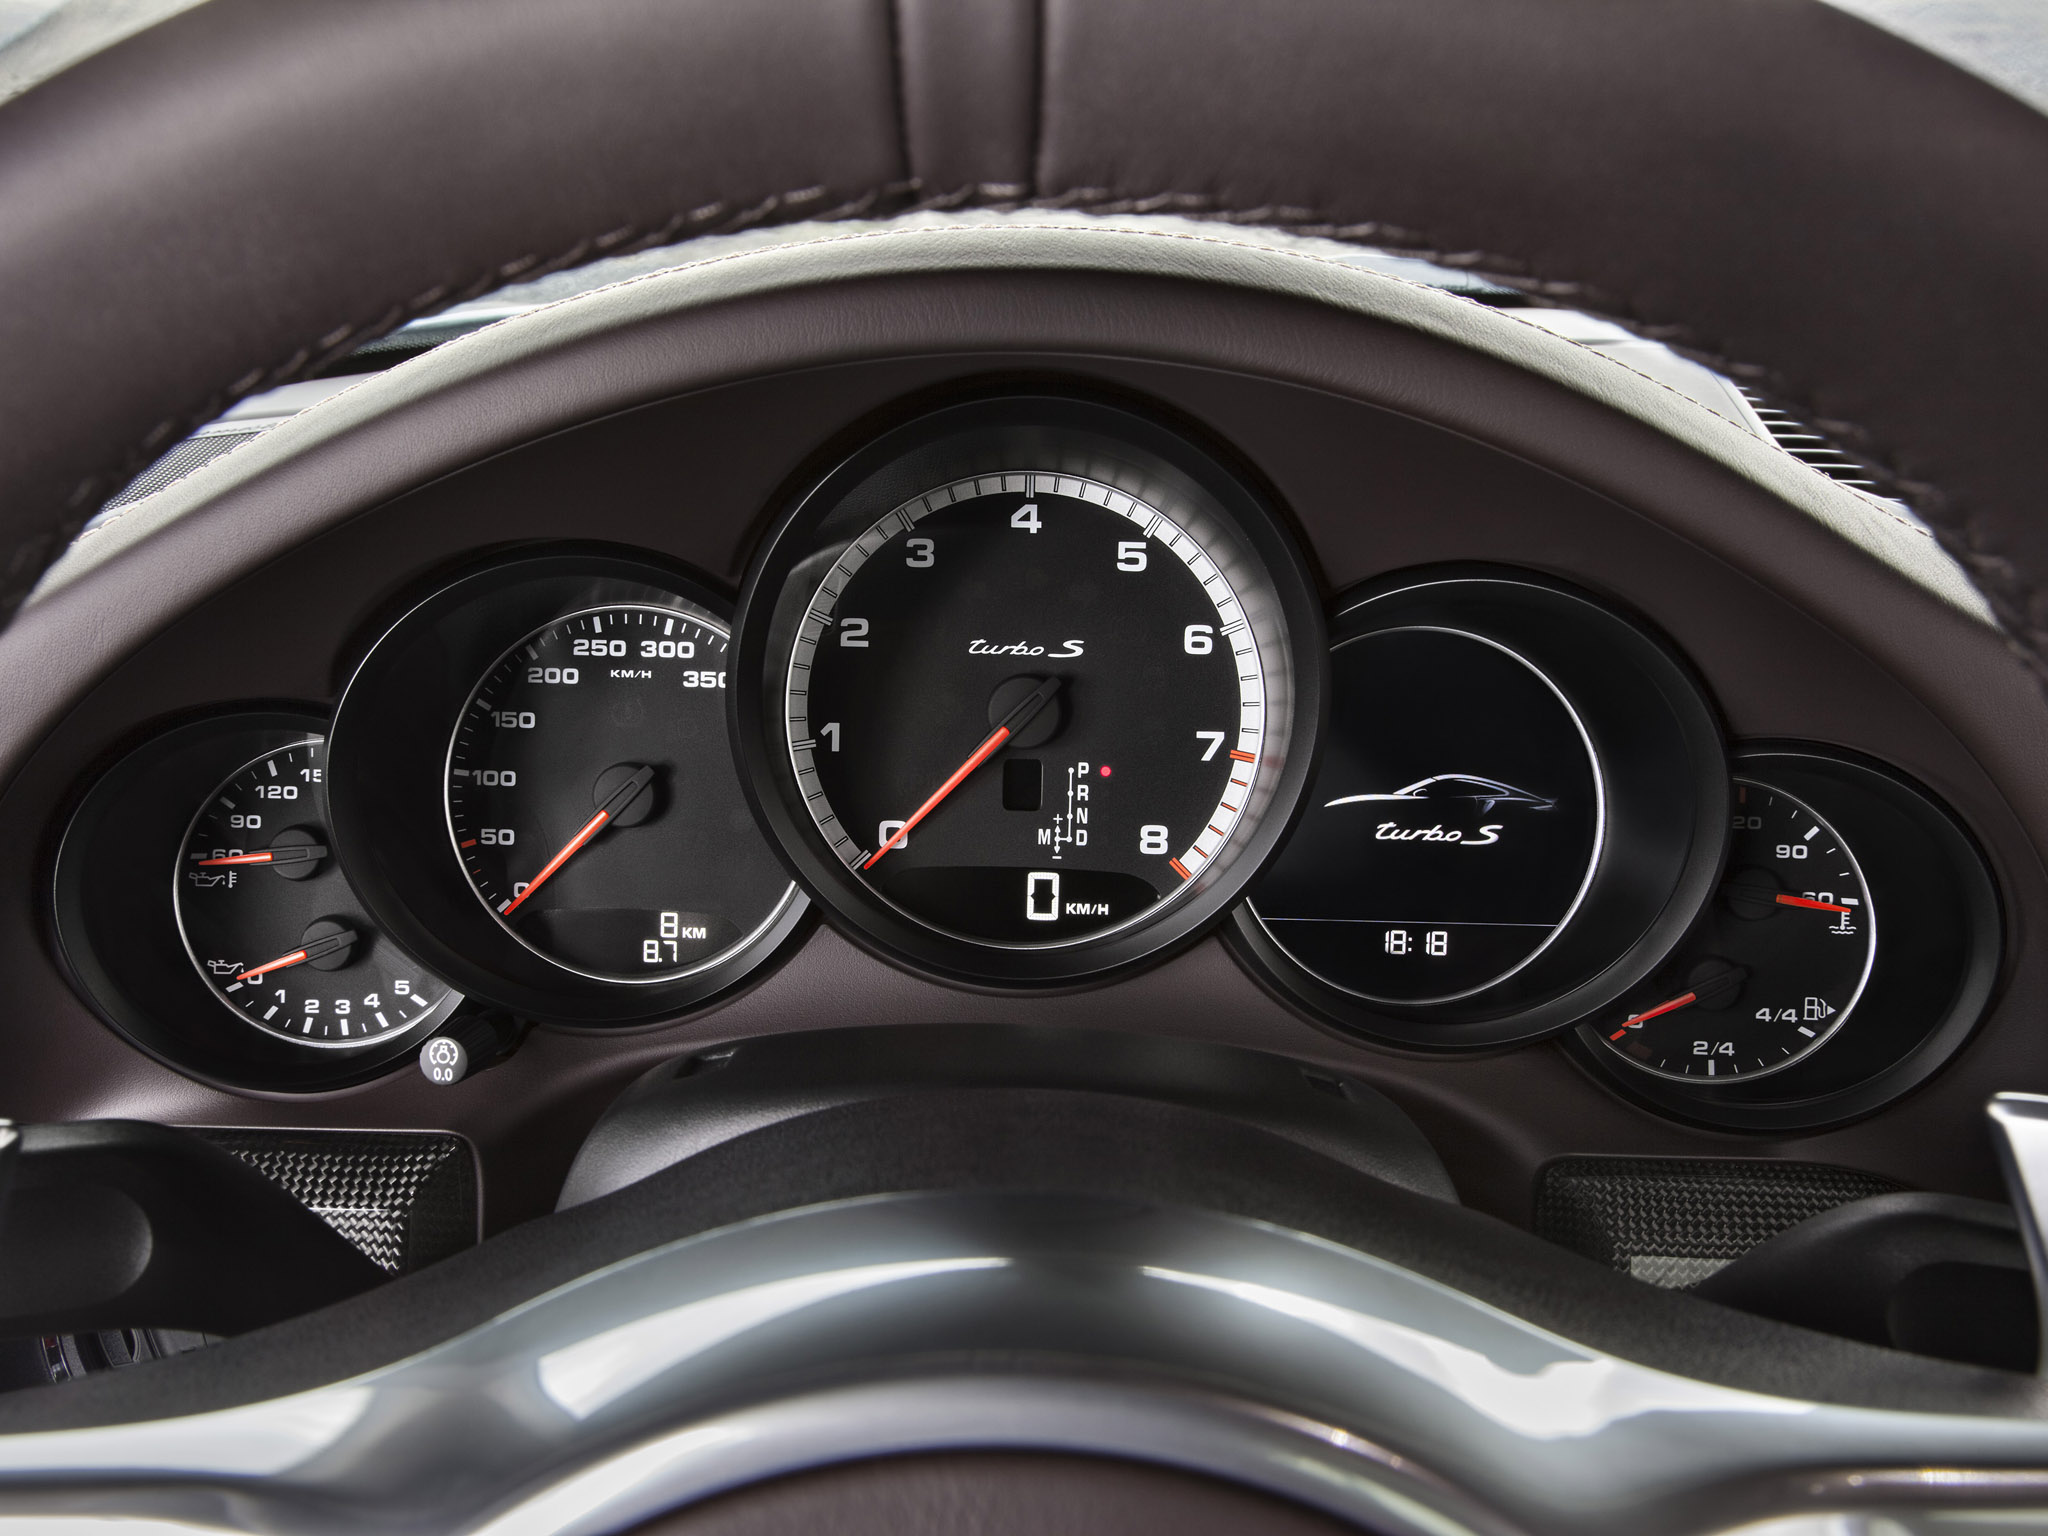 2013 Porsche 911 Turbo S 991 interior g wallpaper backgroundPorsche 991 Turbo Interior